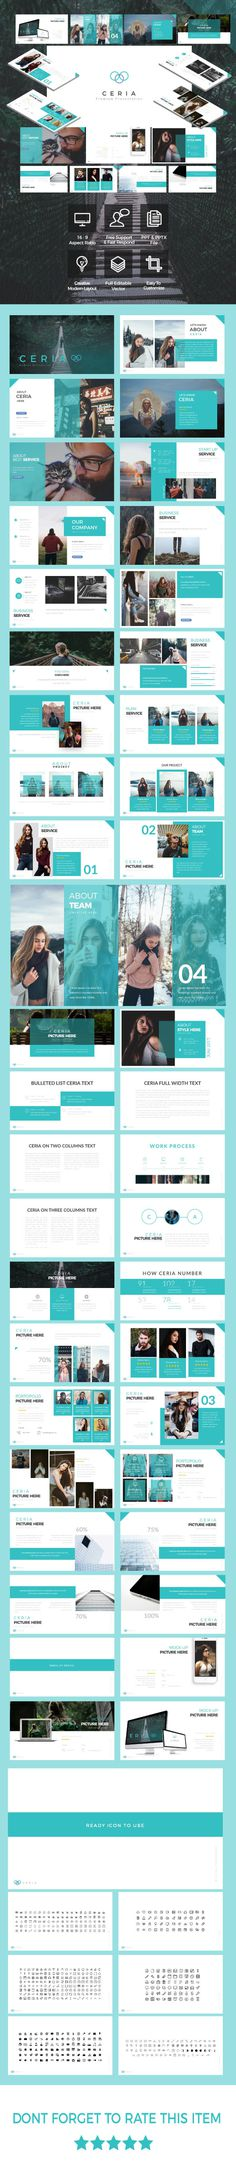 CERIA Multipurpose Powerpoint Template - Business PowerPoint Templates